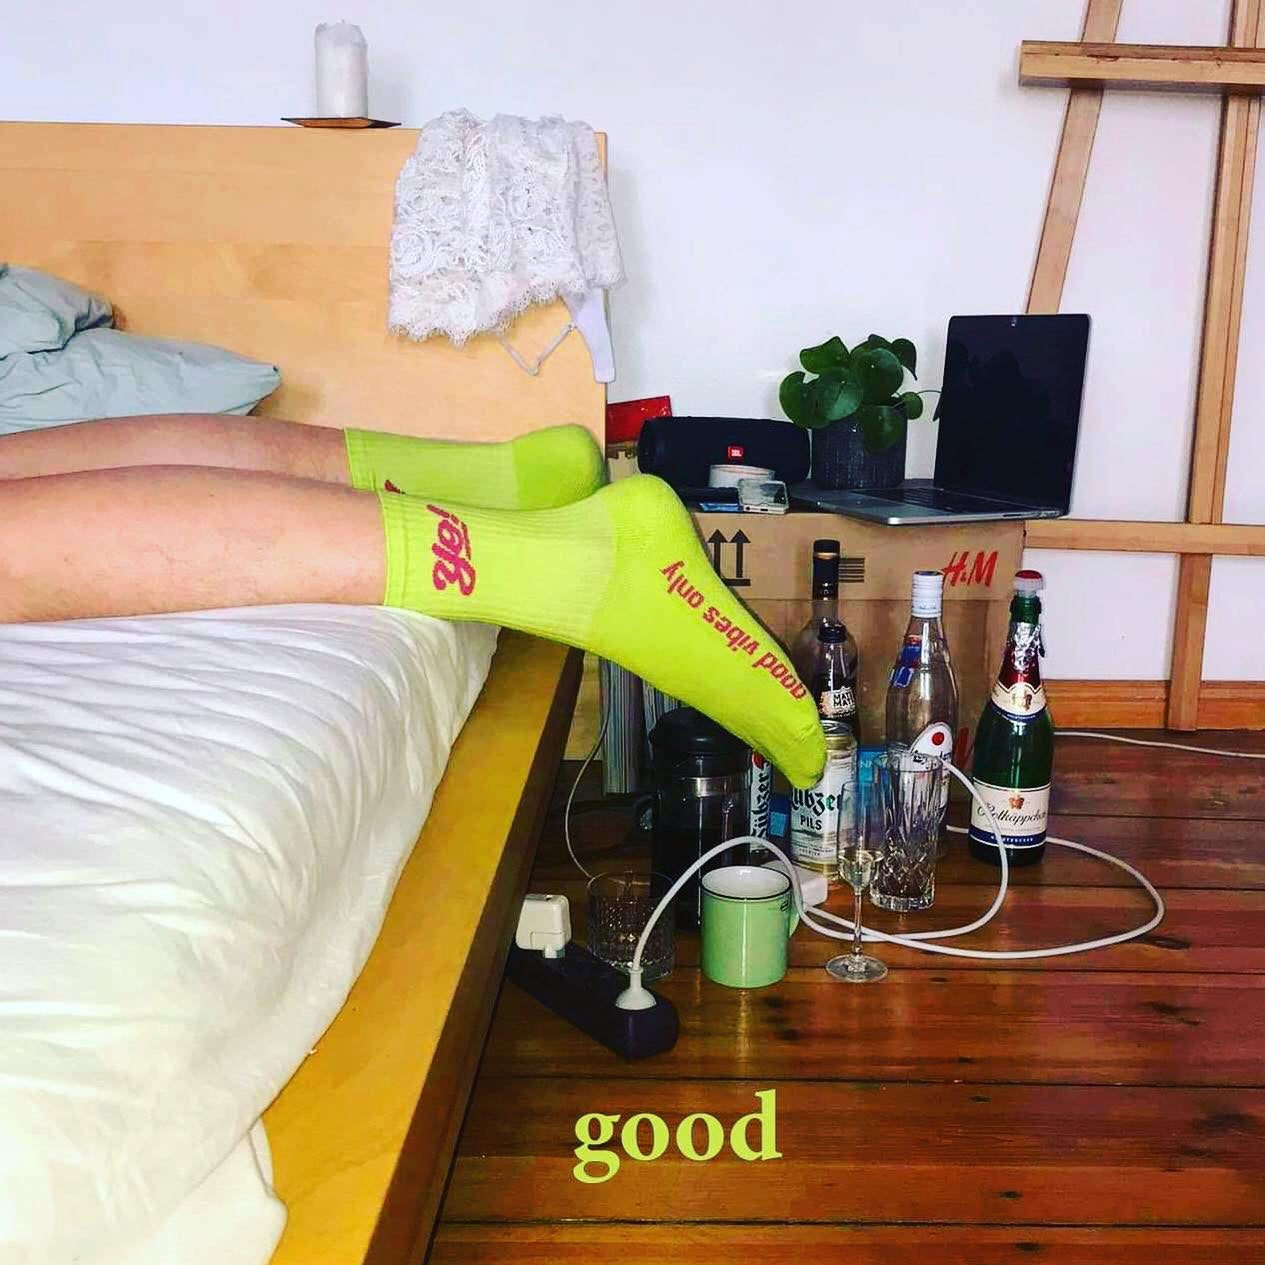 Image of good socks